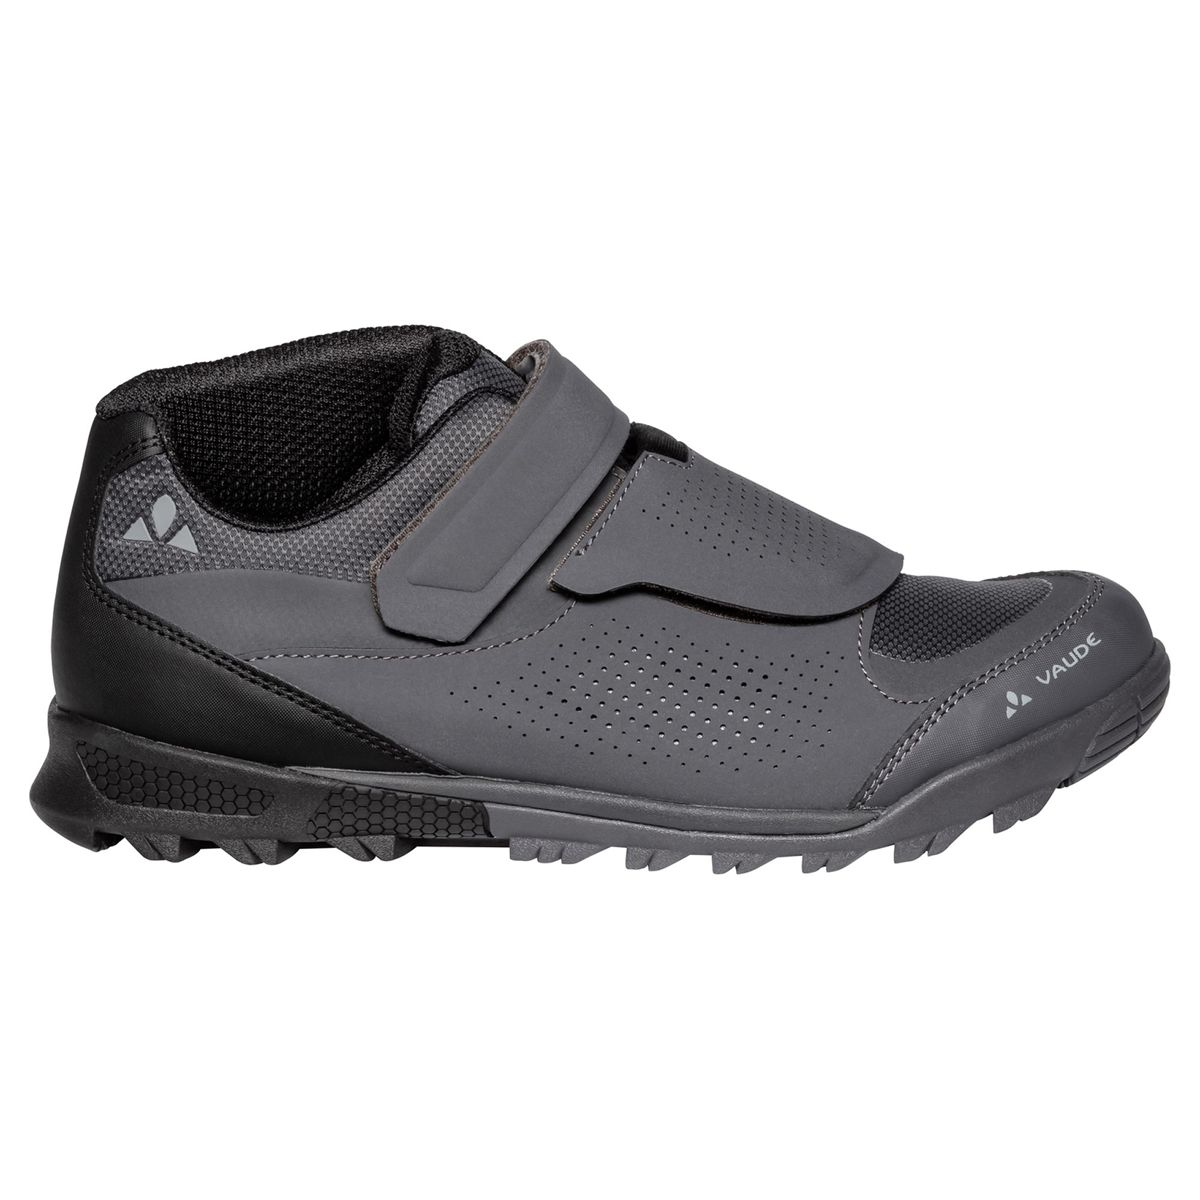 VAUDE AM Downieville Mid All-Mountain shoes | Sko